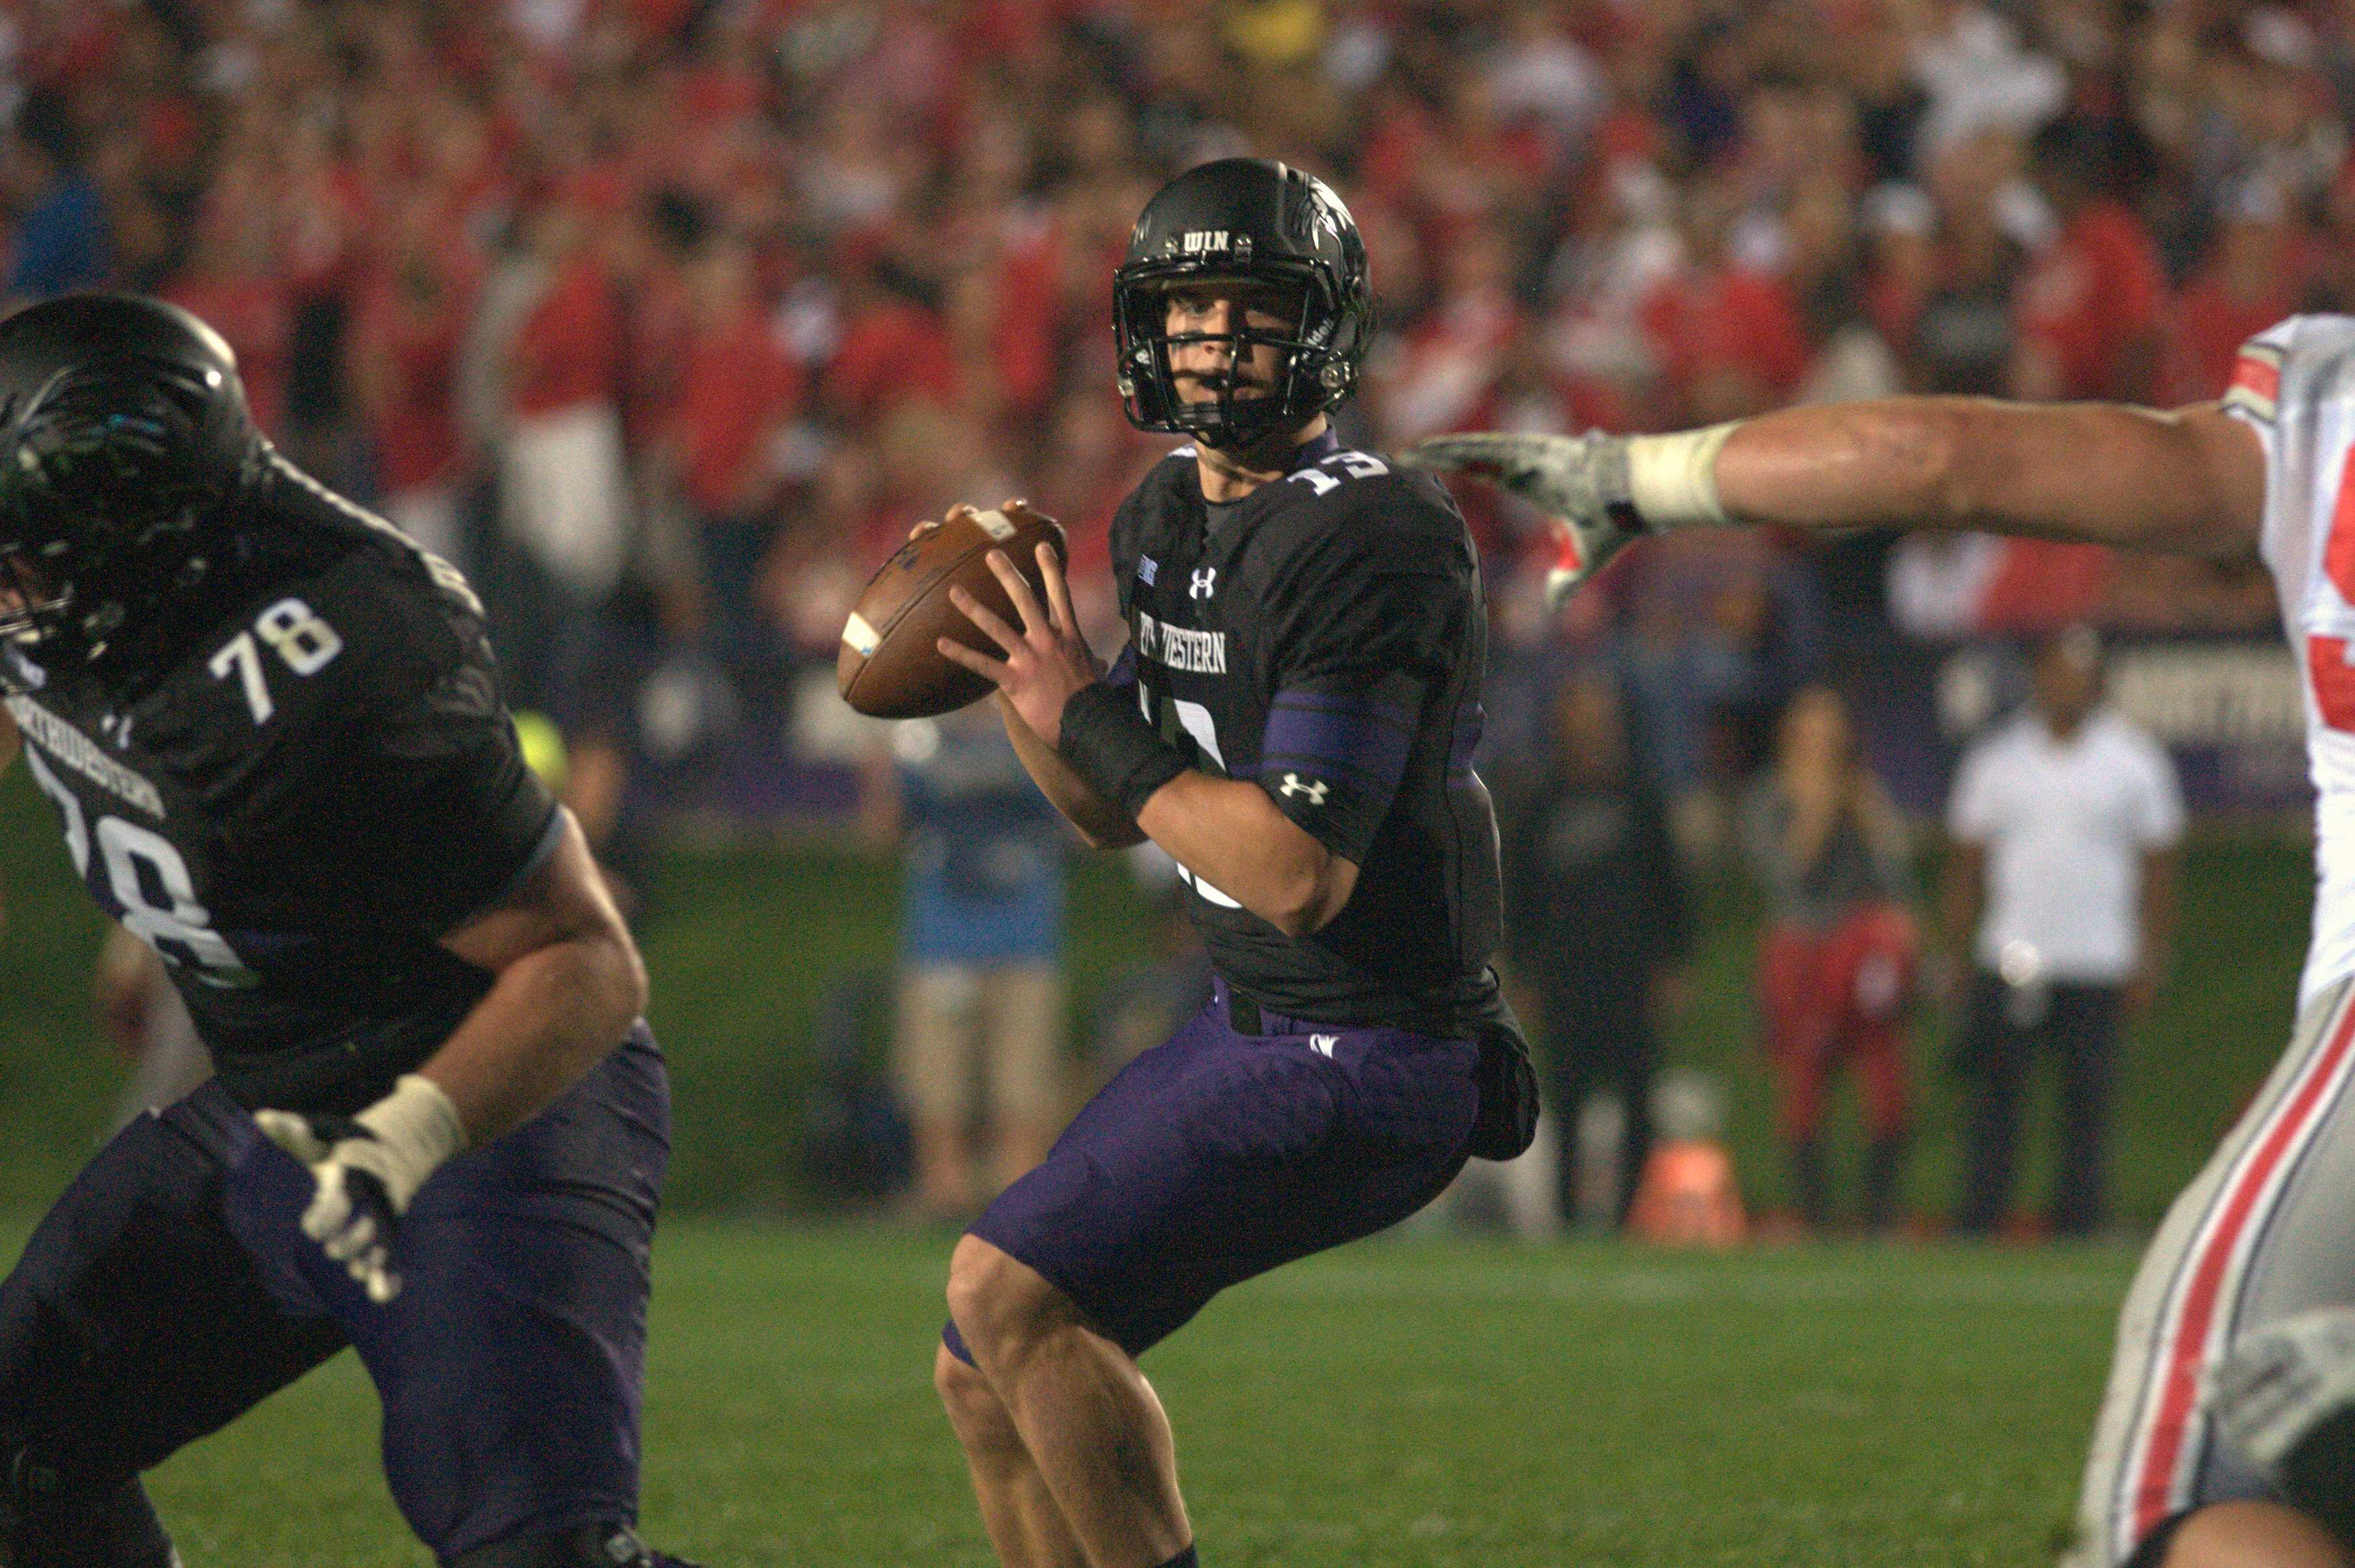 Junior quarterback Trevor Siemian surveys the field. Northwestern's offense stalled in the red zone, costing the team a 40-30 loss to Ohio State on Saturday.